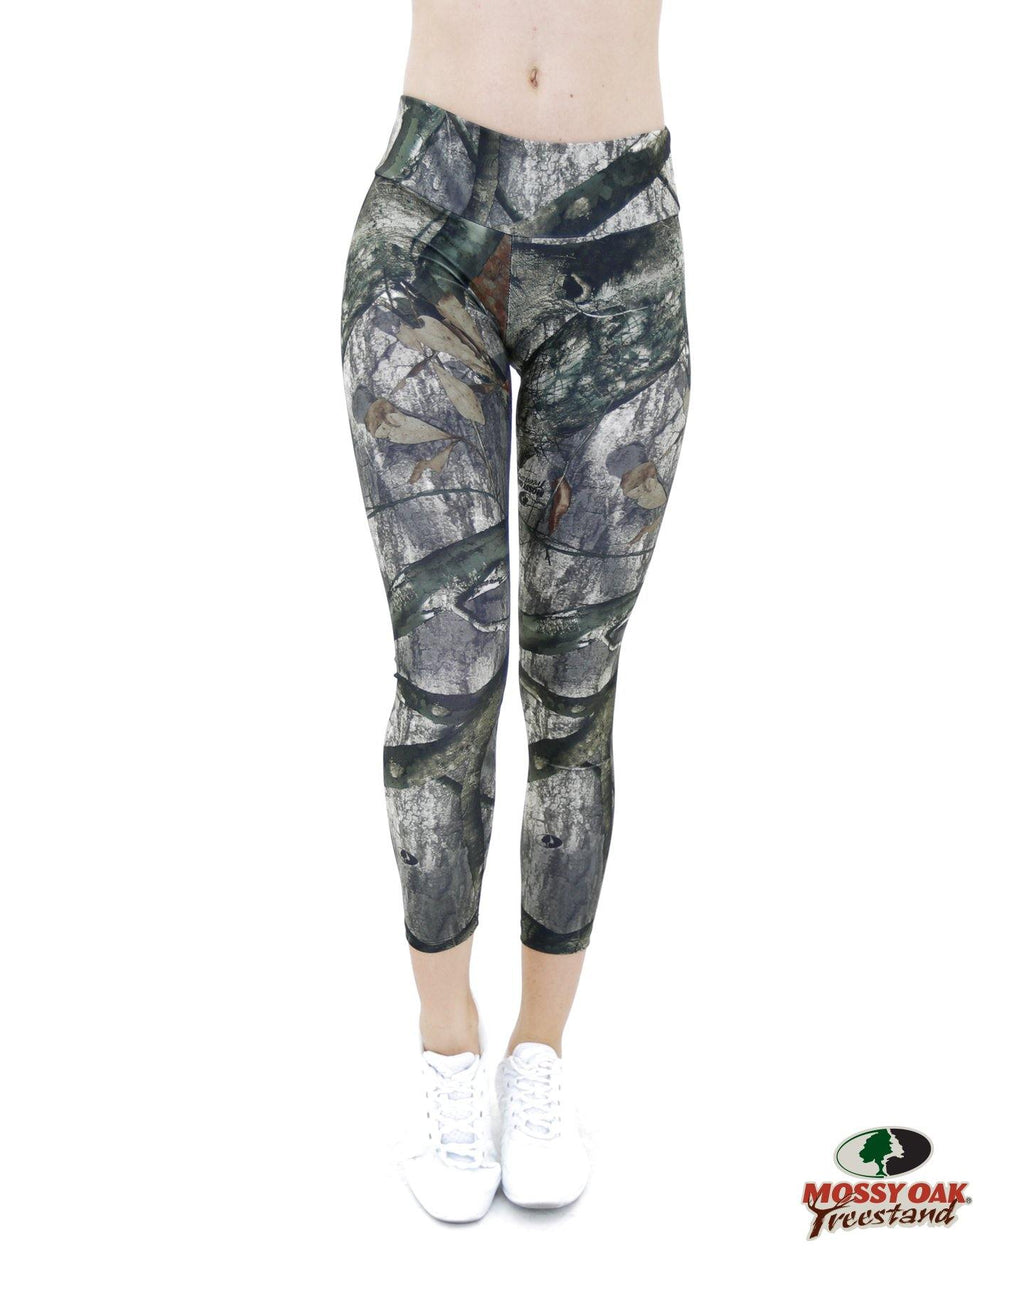 Apsara Leggings Low Waist Cropped, Mossy Oak Treestand